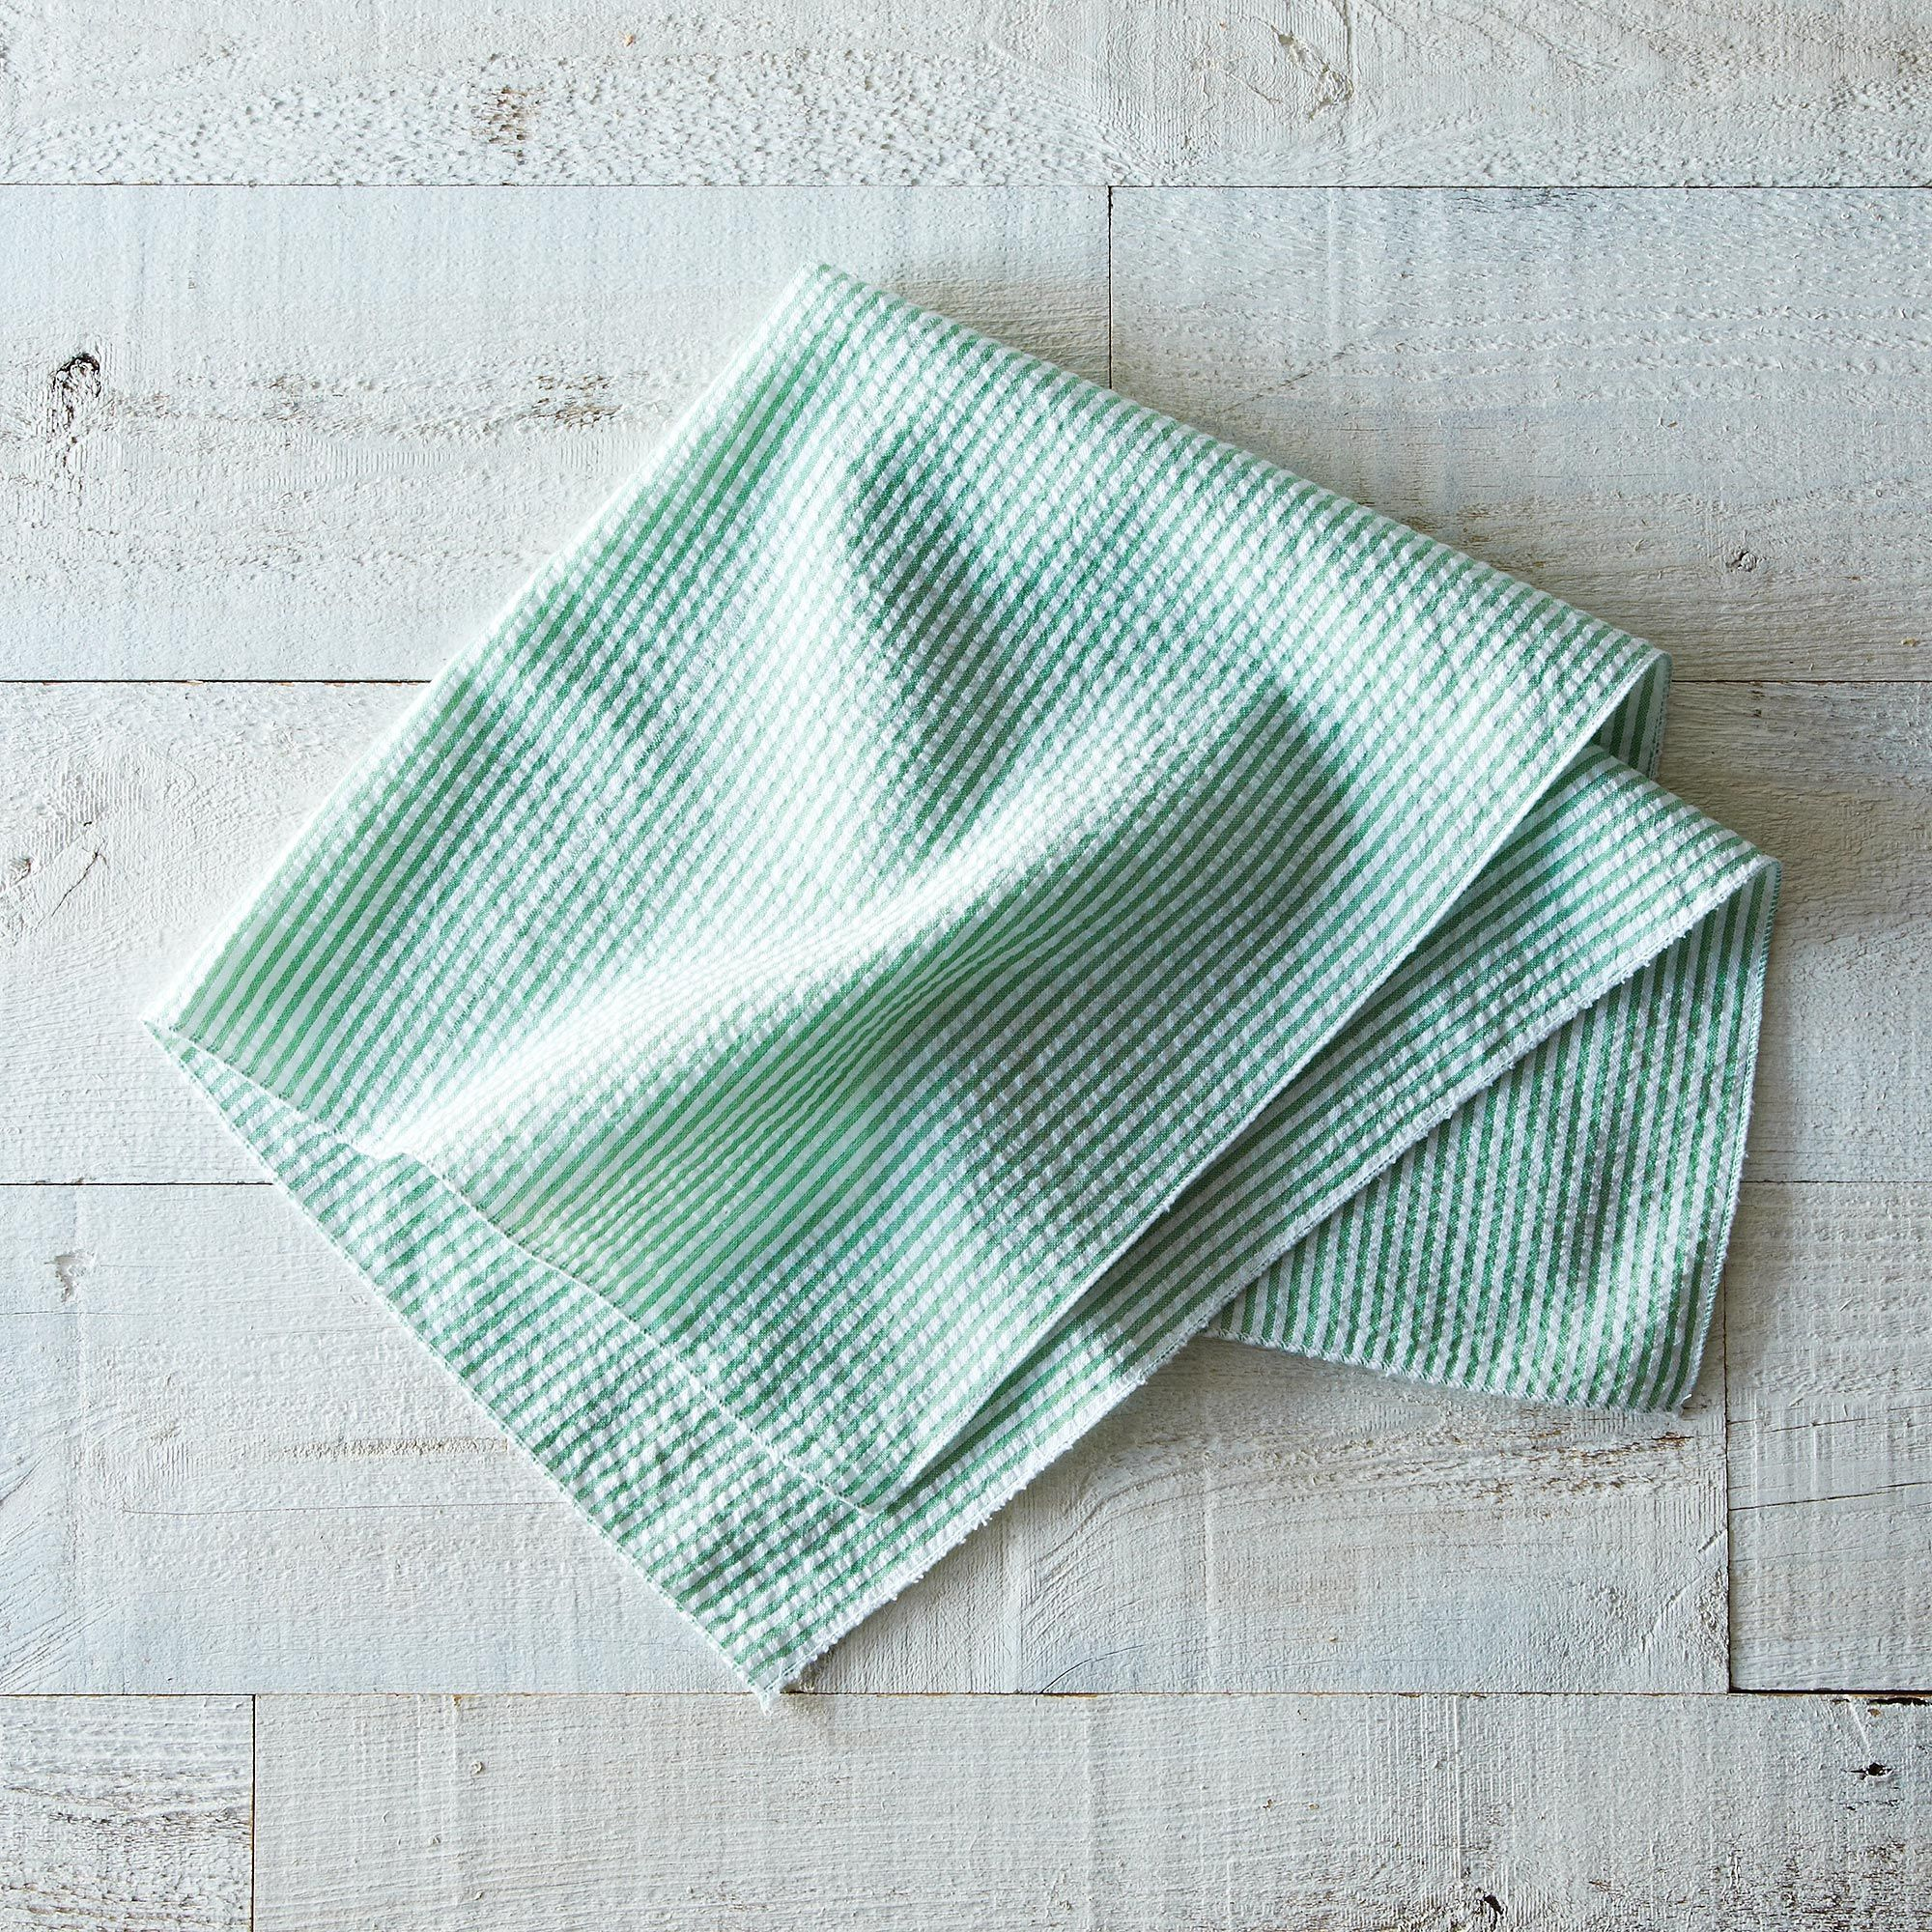 D755bf9a dc19 49c0 a671 858ec80fd125  2013 0529 dot and army 4 seersucker napkins green open 004